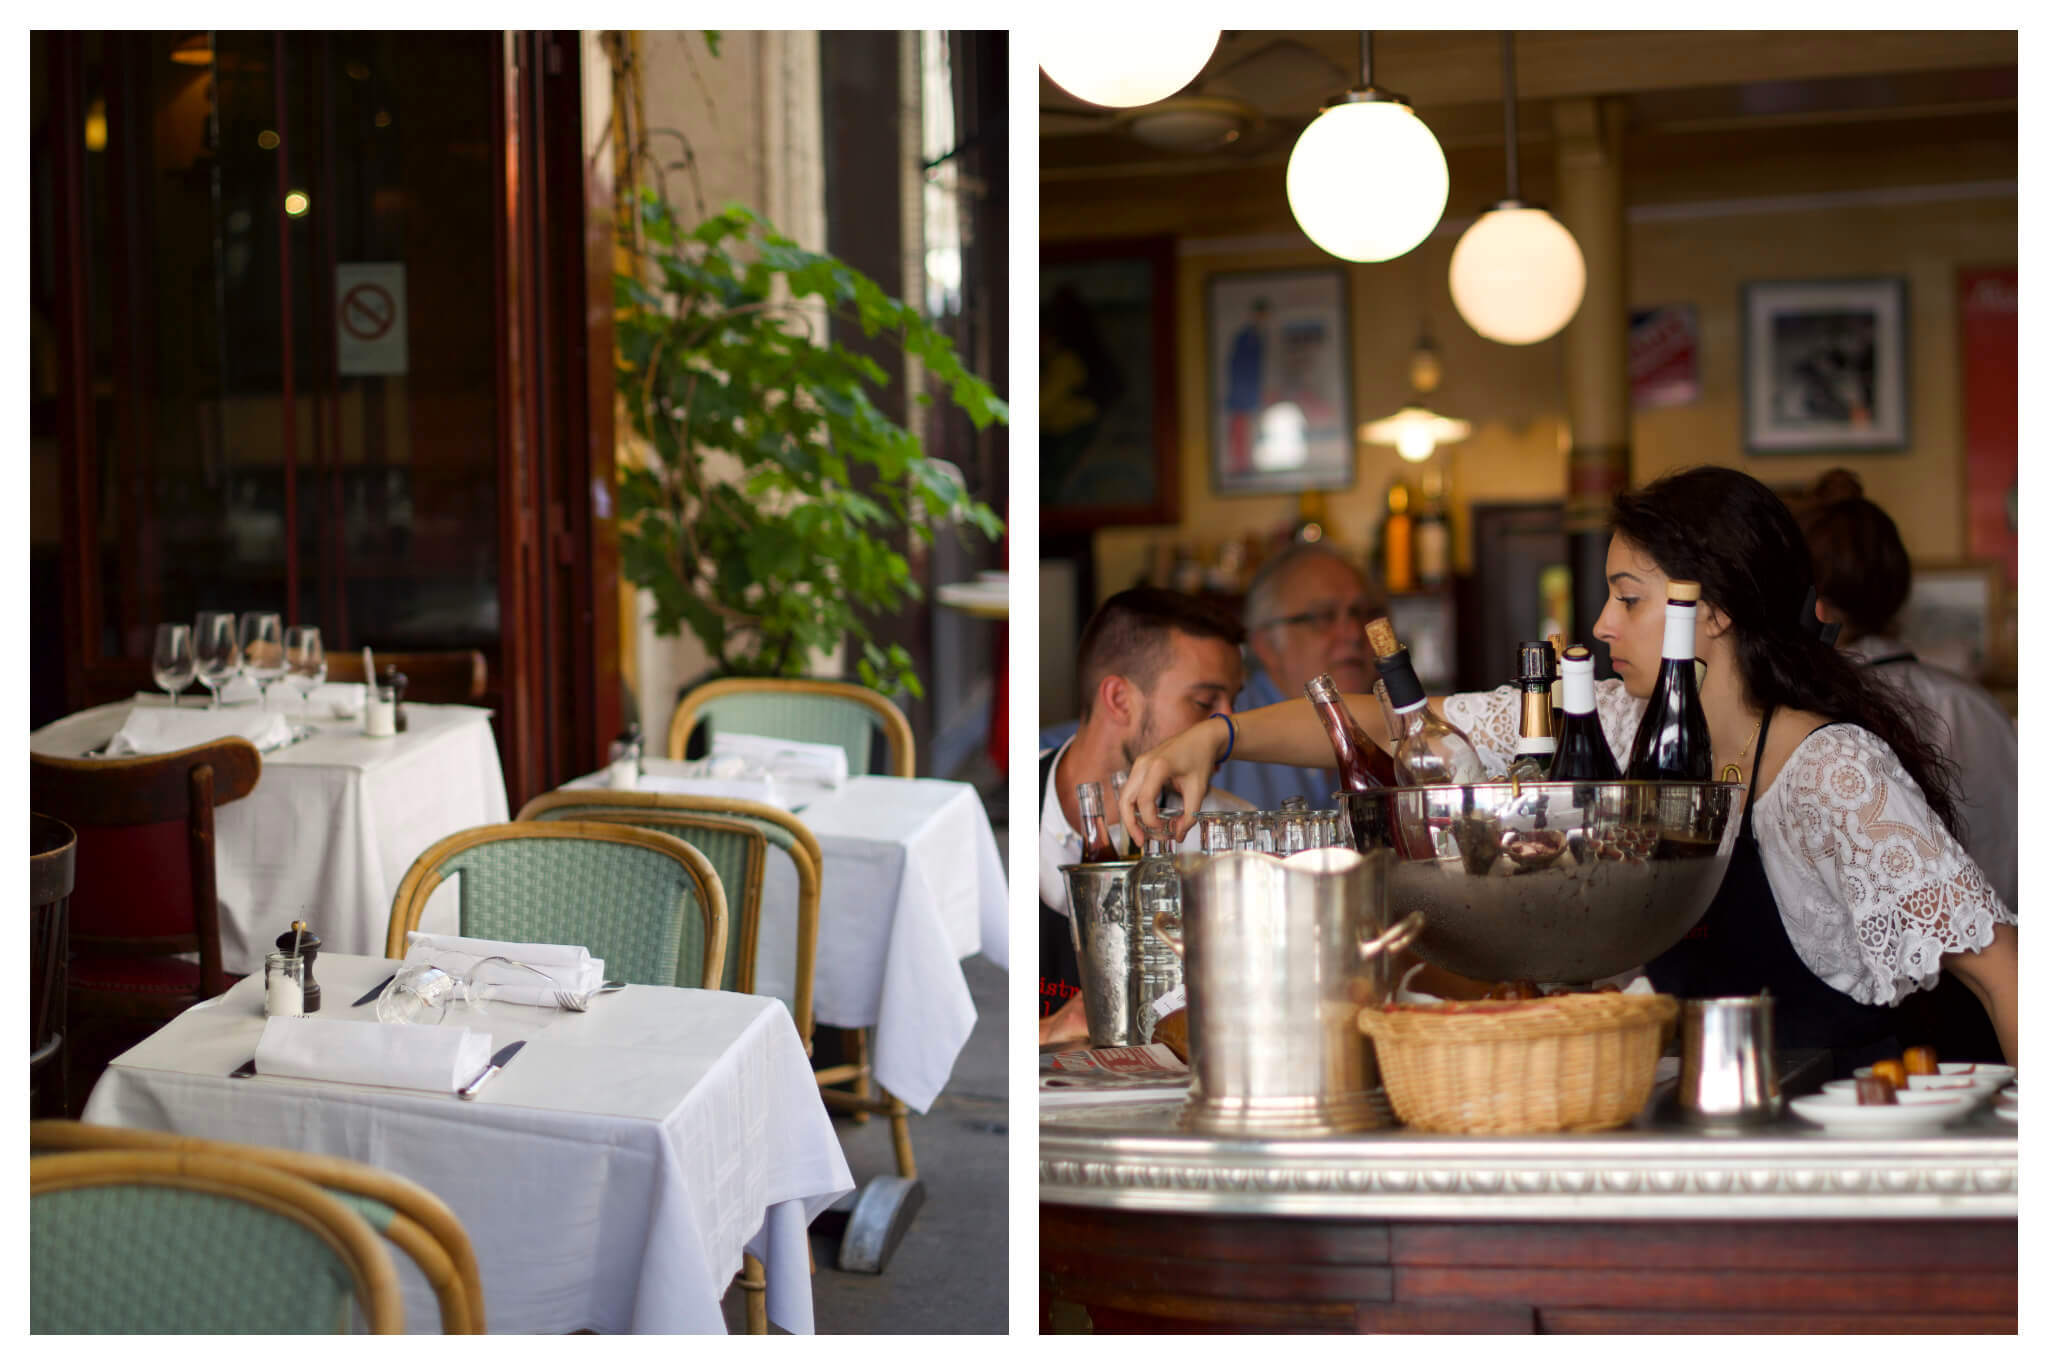 Left: Empty bistro tables and chairs sit on a bistro terrace in Paris, Right: A waitress grabs a carafe d'eau from behind the bar of a restaurant in Paris.